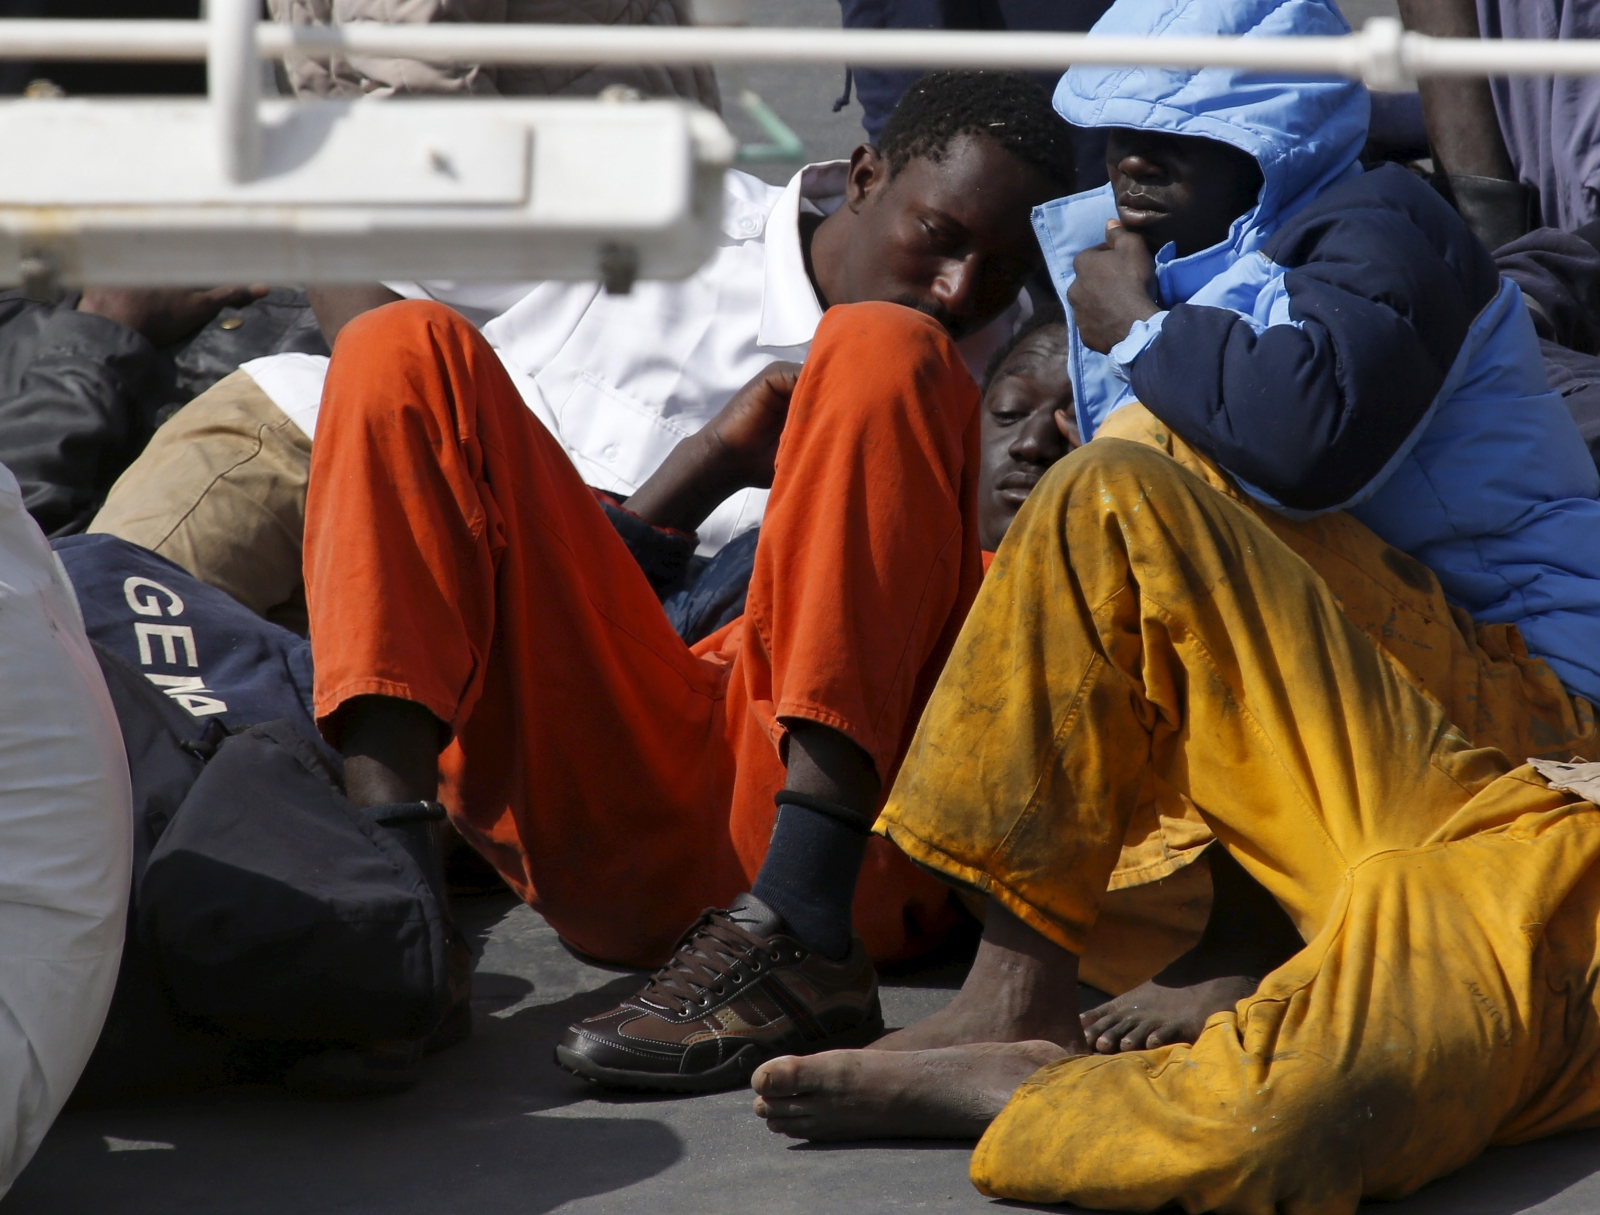 Mediterranean migrants tragedy